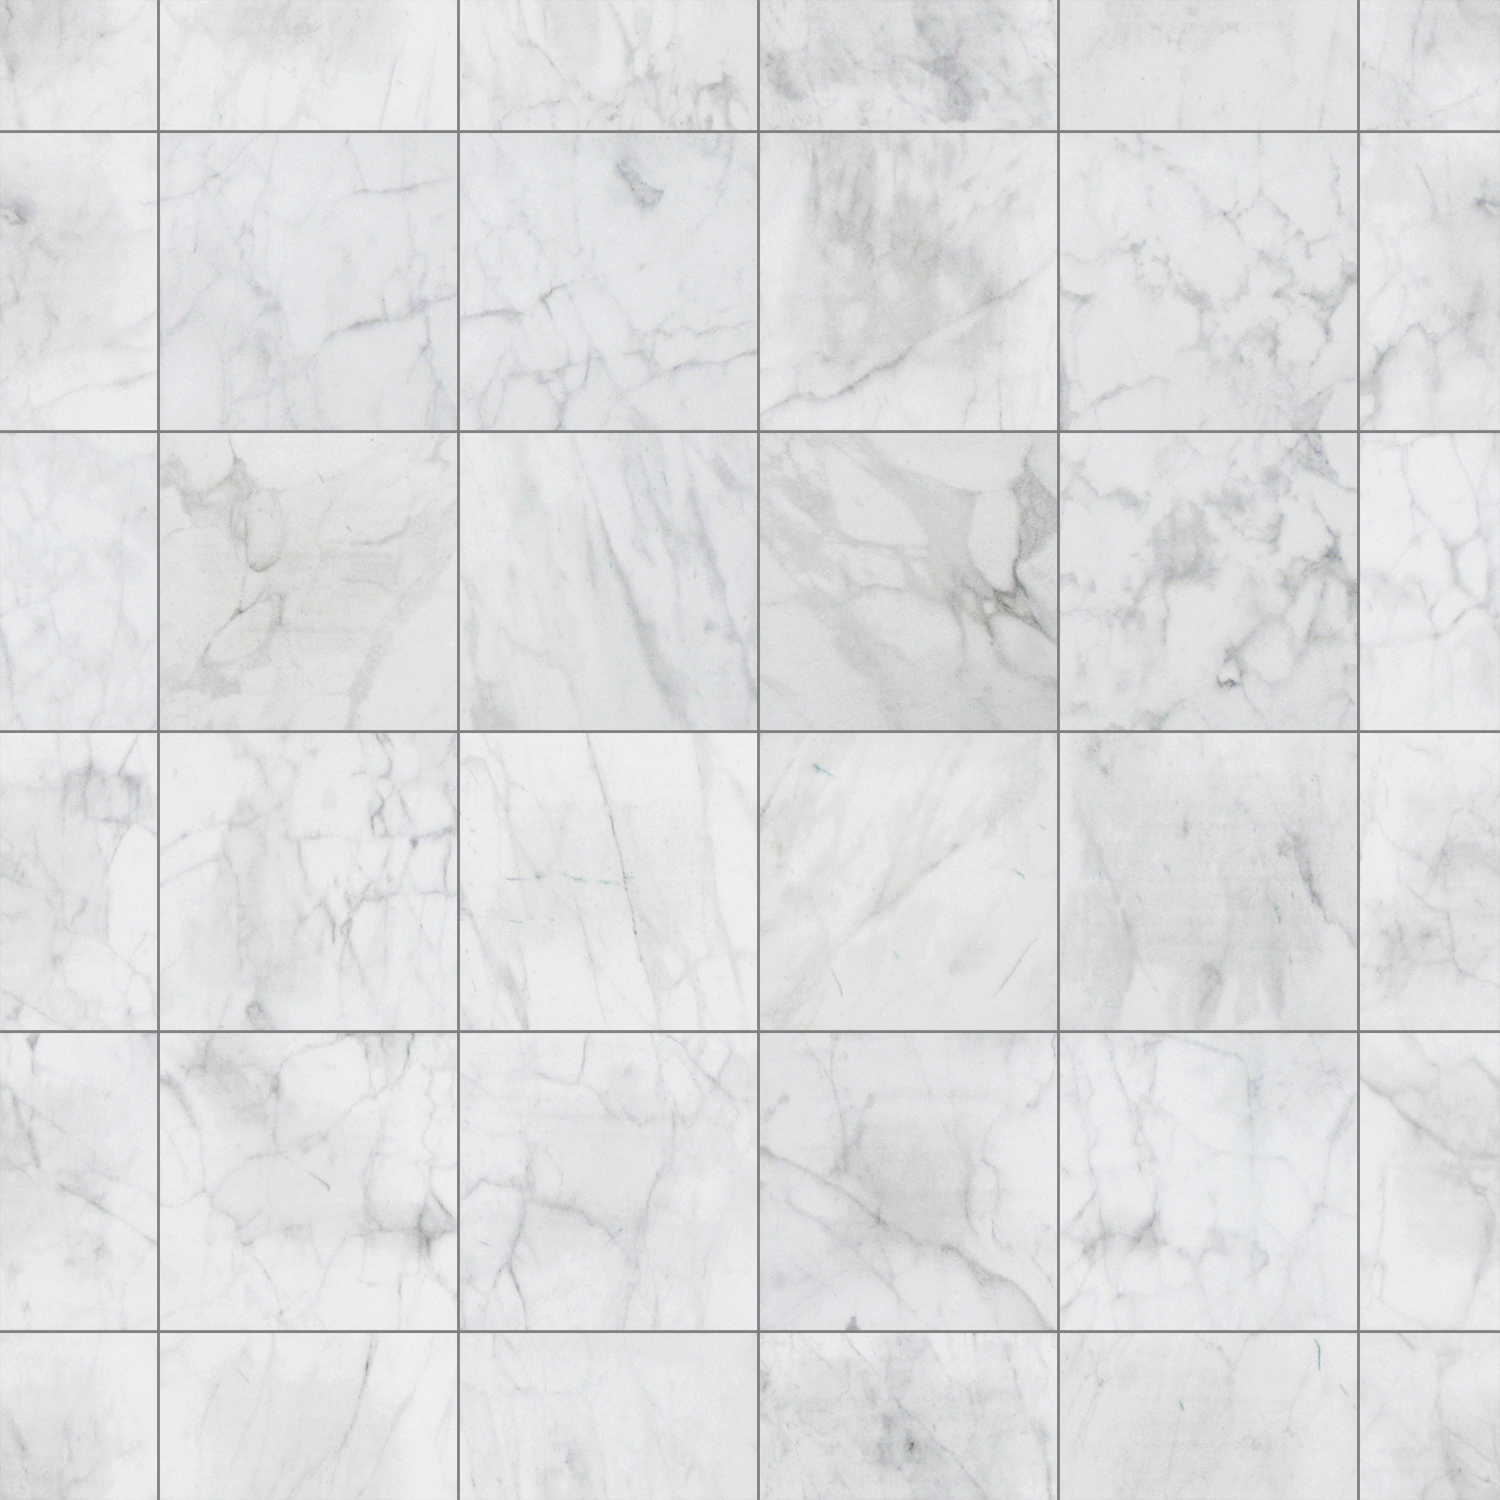 Texture  White Marble Texture Background Download Photo White